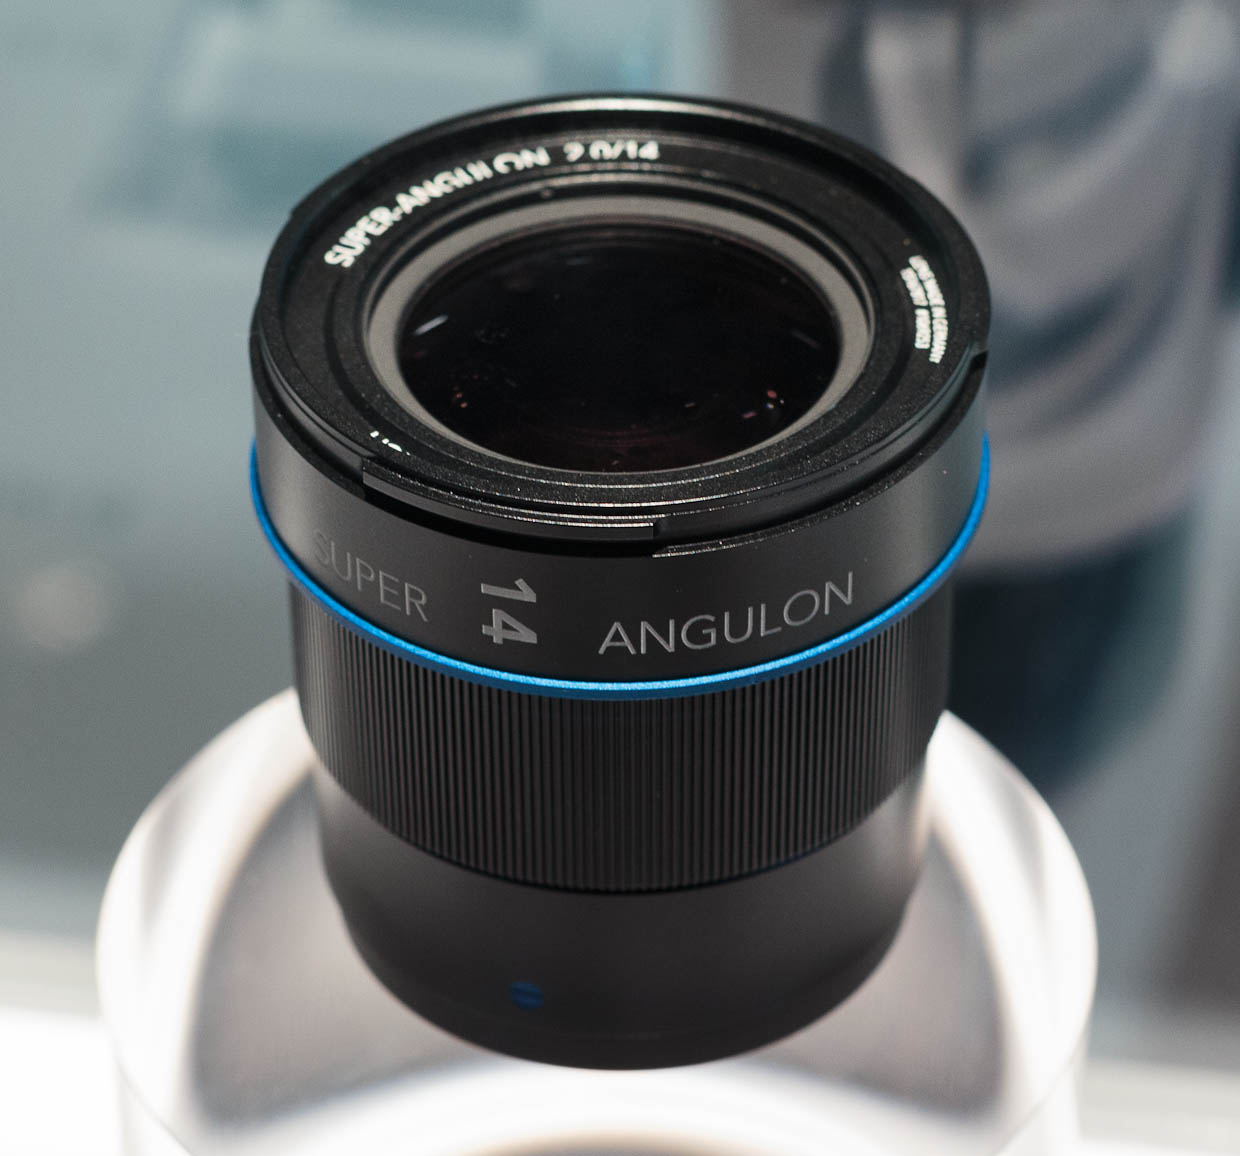 Schneider Kreuznach's prototype Super-Angulon 14 mm/2.0 wide-angle lens for Micro Four Thirds cameras.